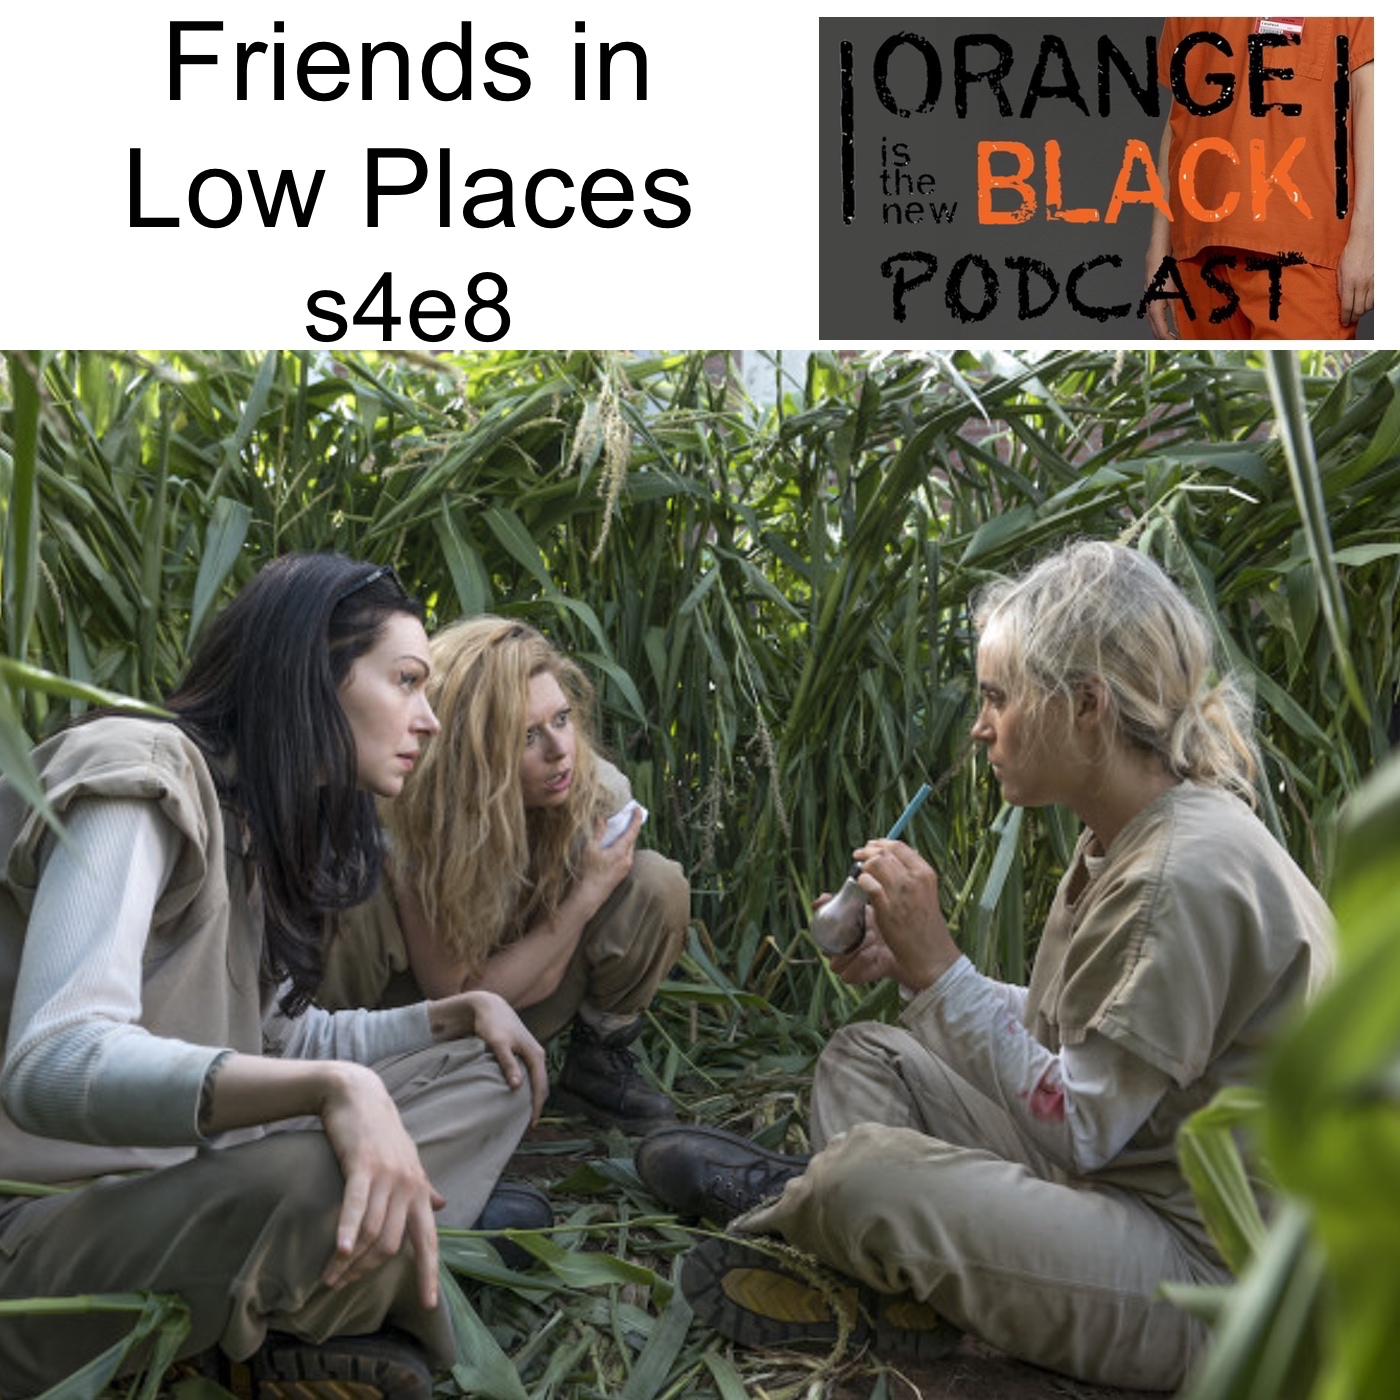 Friends in Low Places s4e8 - Orange is the New Black Podcast